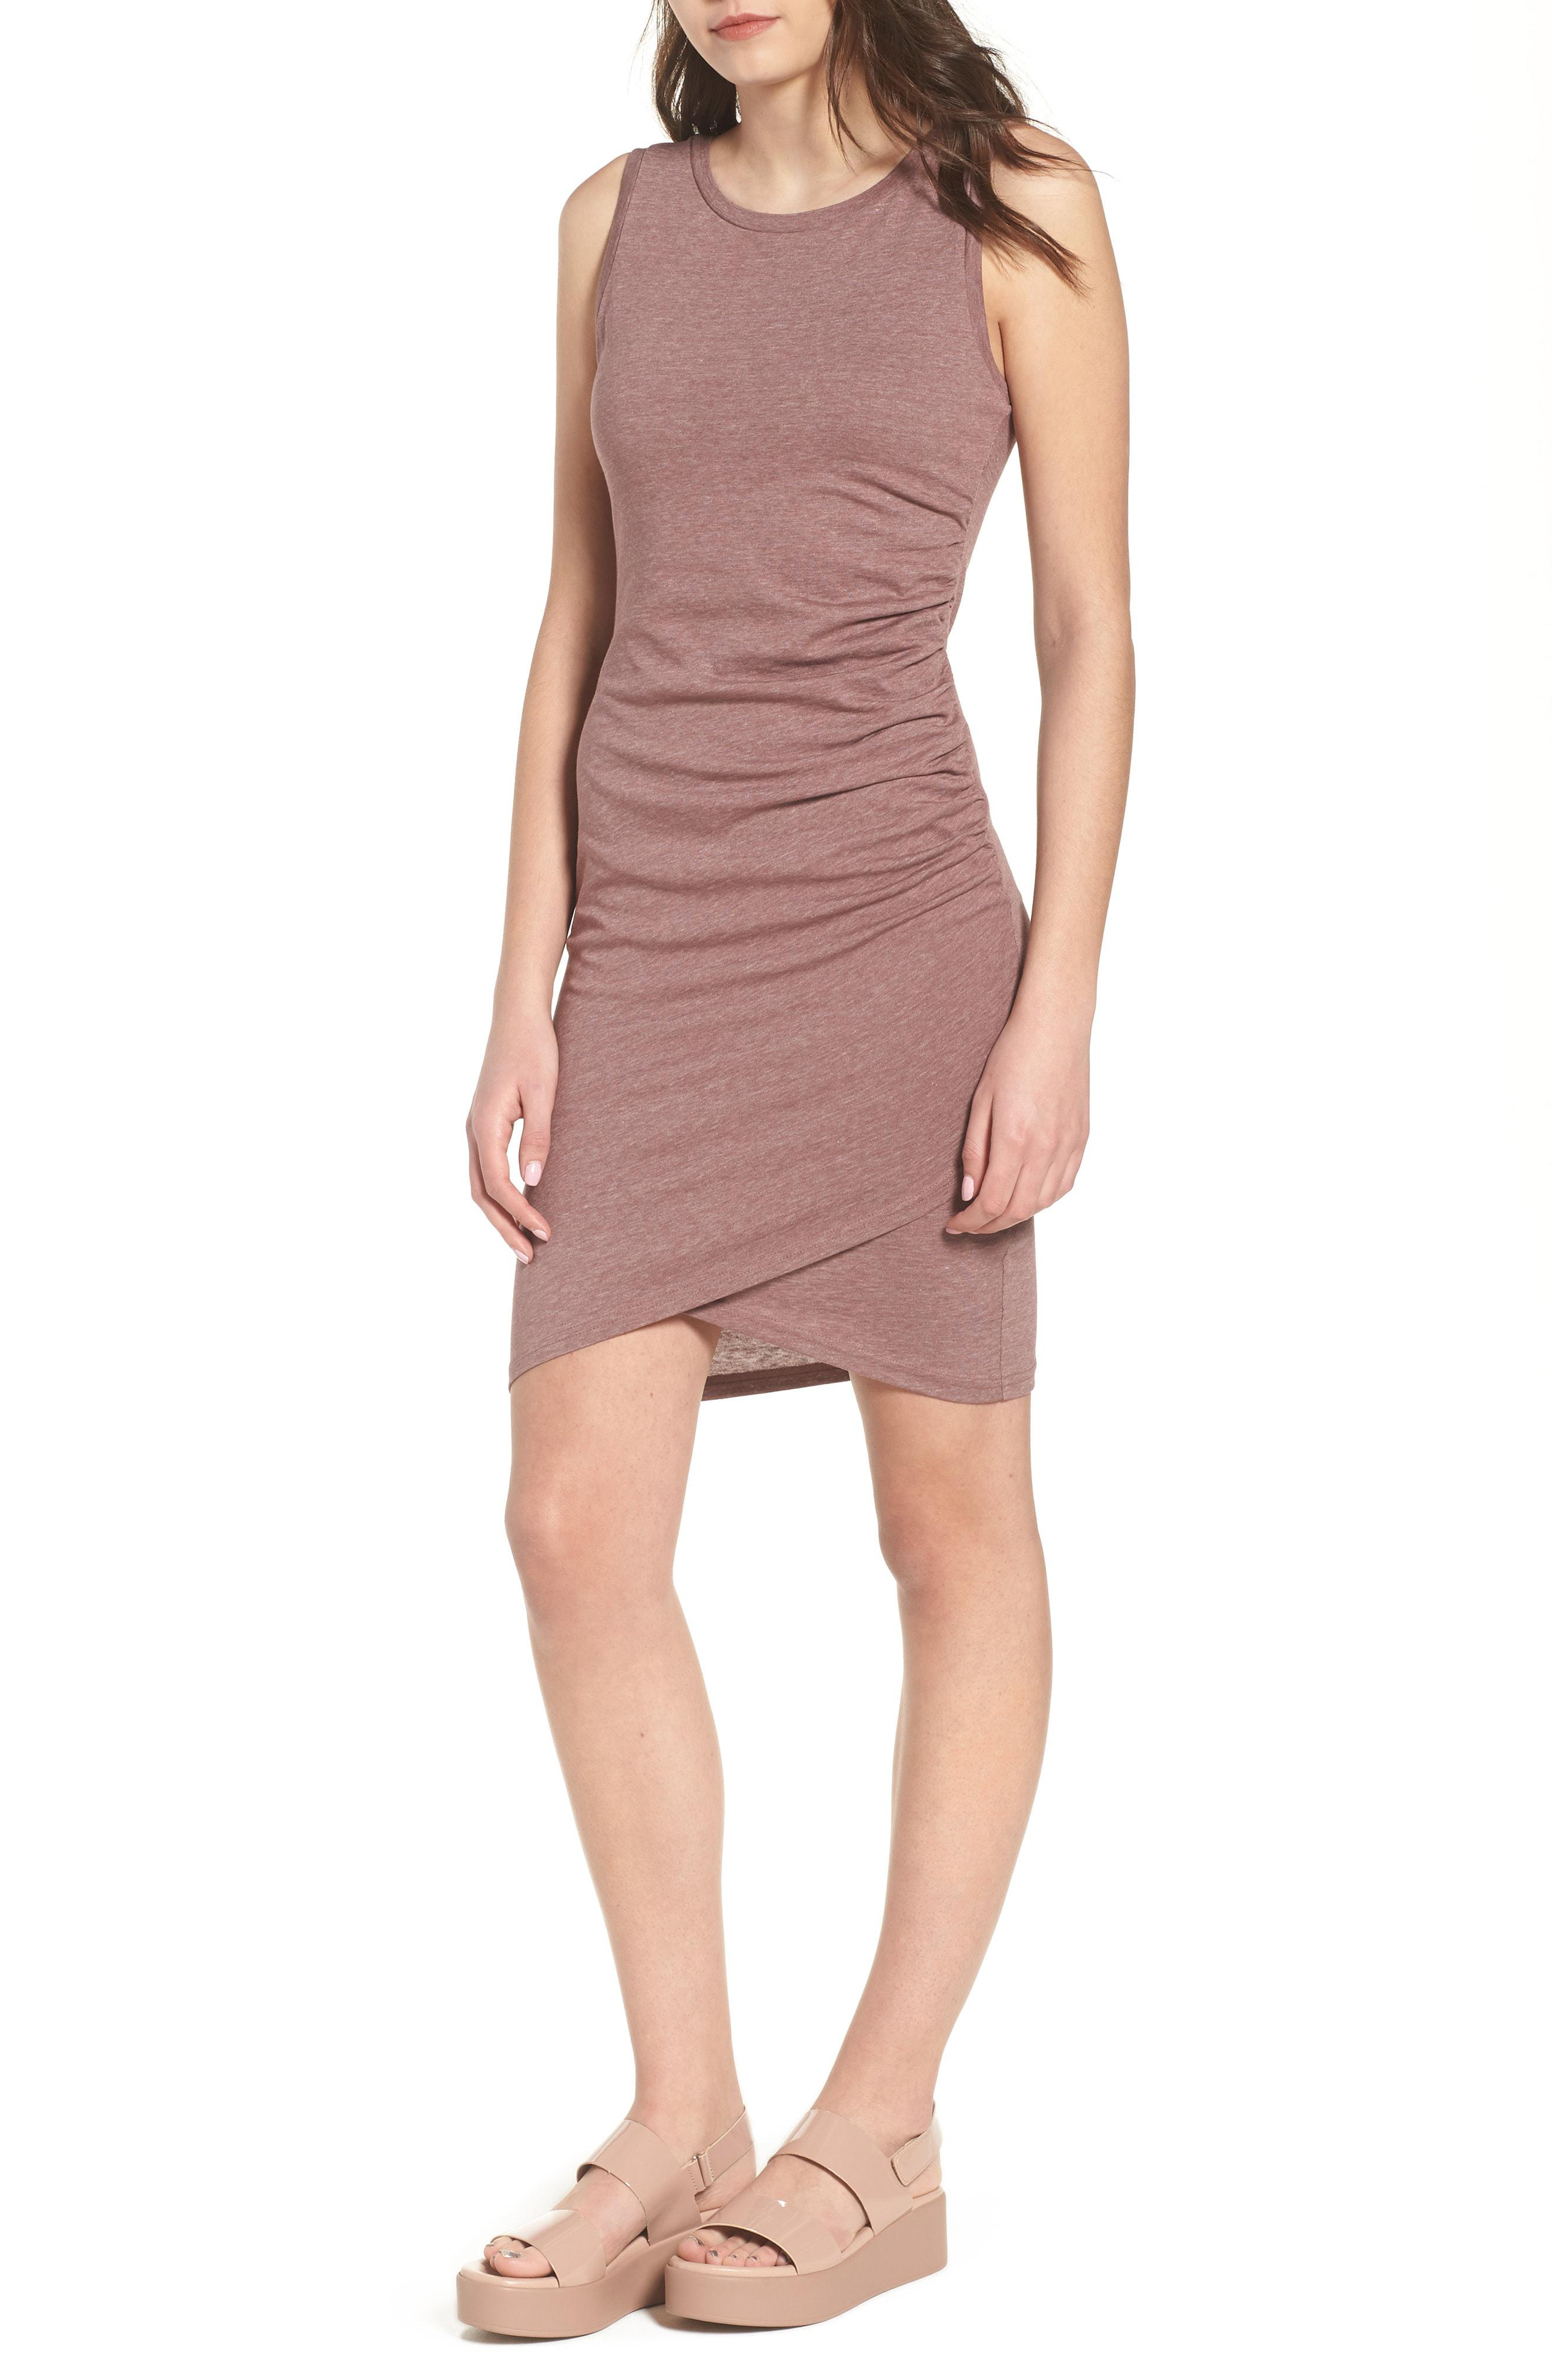 435f87afd8cc Leith. Women s Ruched Body-con Tank Dress